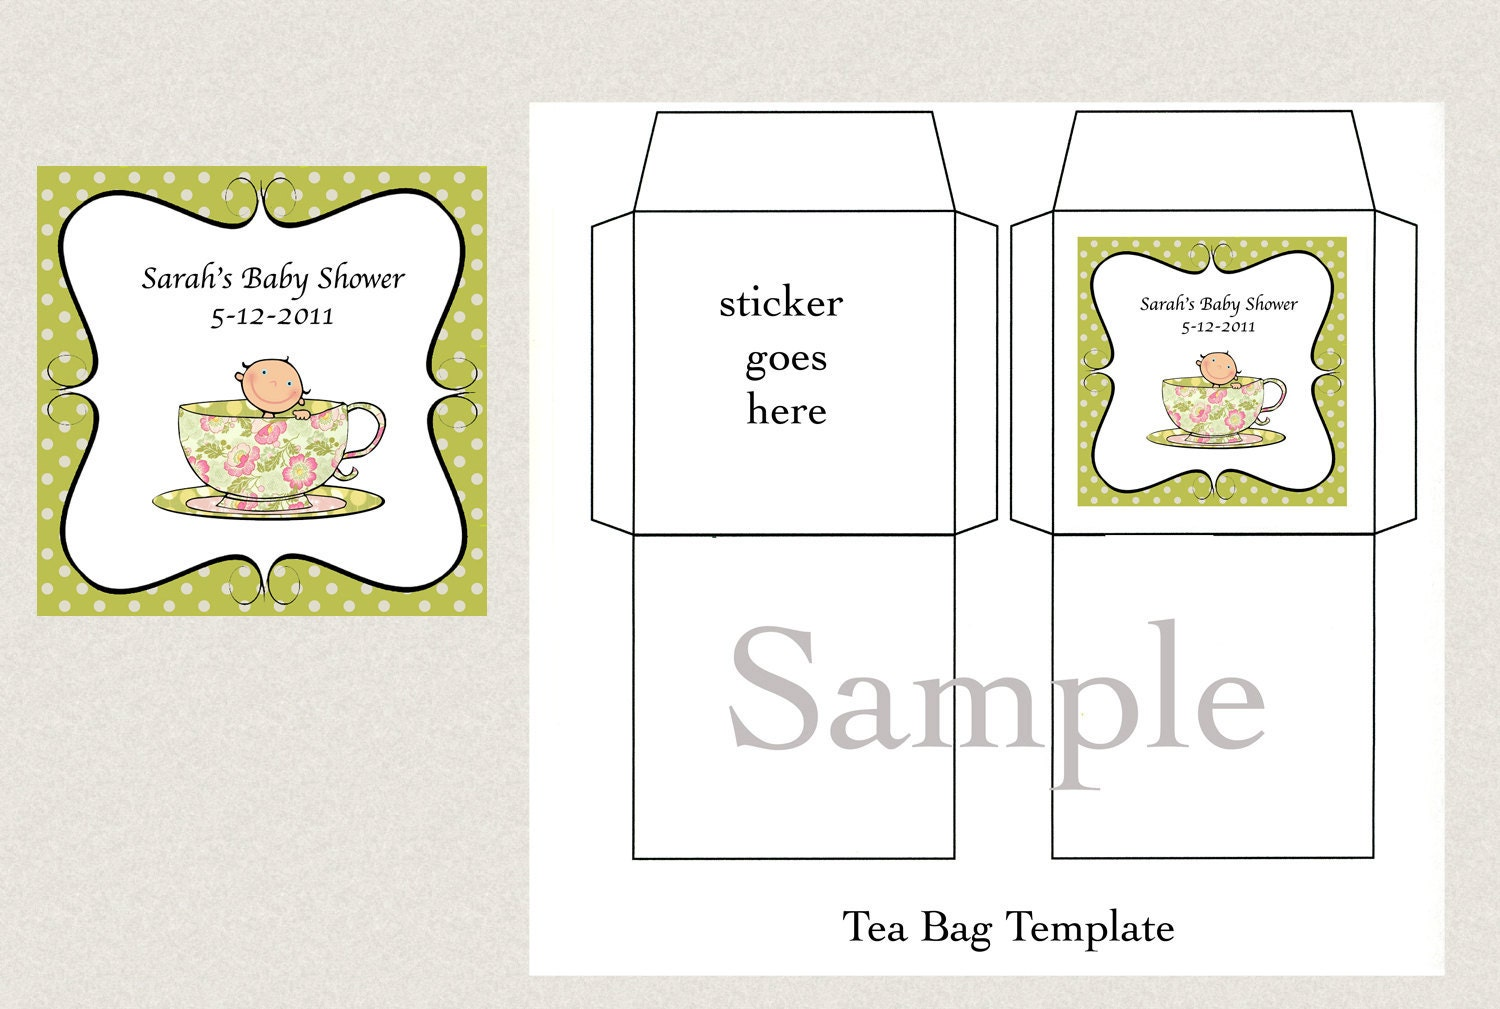 Invoice Approval Diy Printable Tea Bag Cover Template A Babys Brewing Or Ez Receipts Wageworks Pdf with Consulting Invoice Sample Pdf Zoom Invoice Scanning Software Word